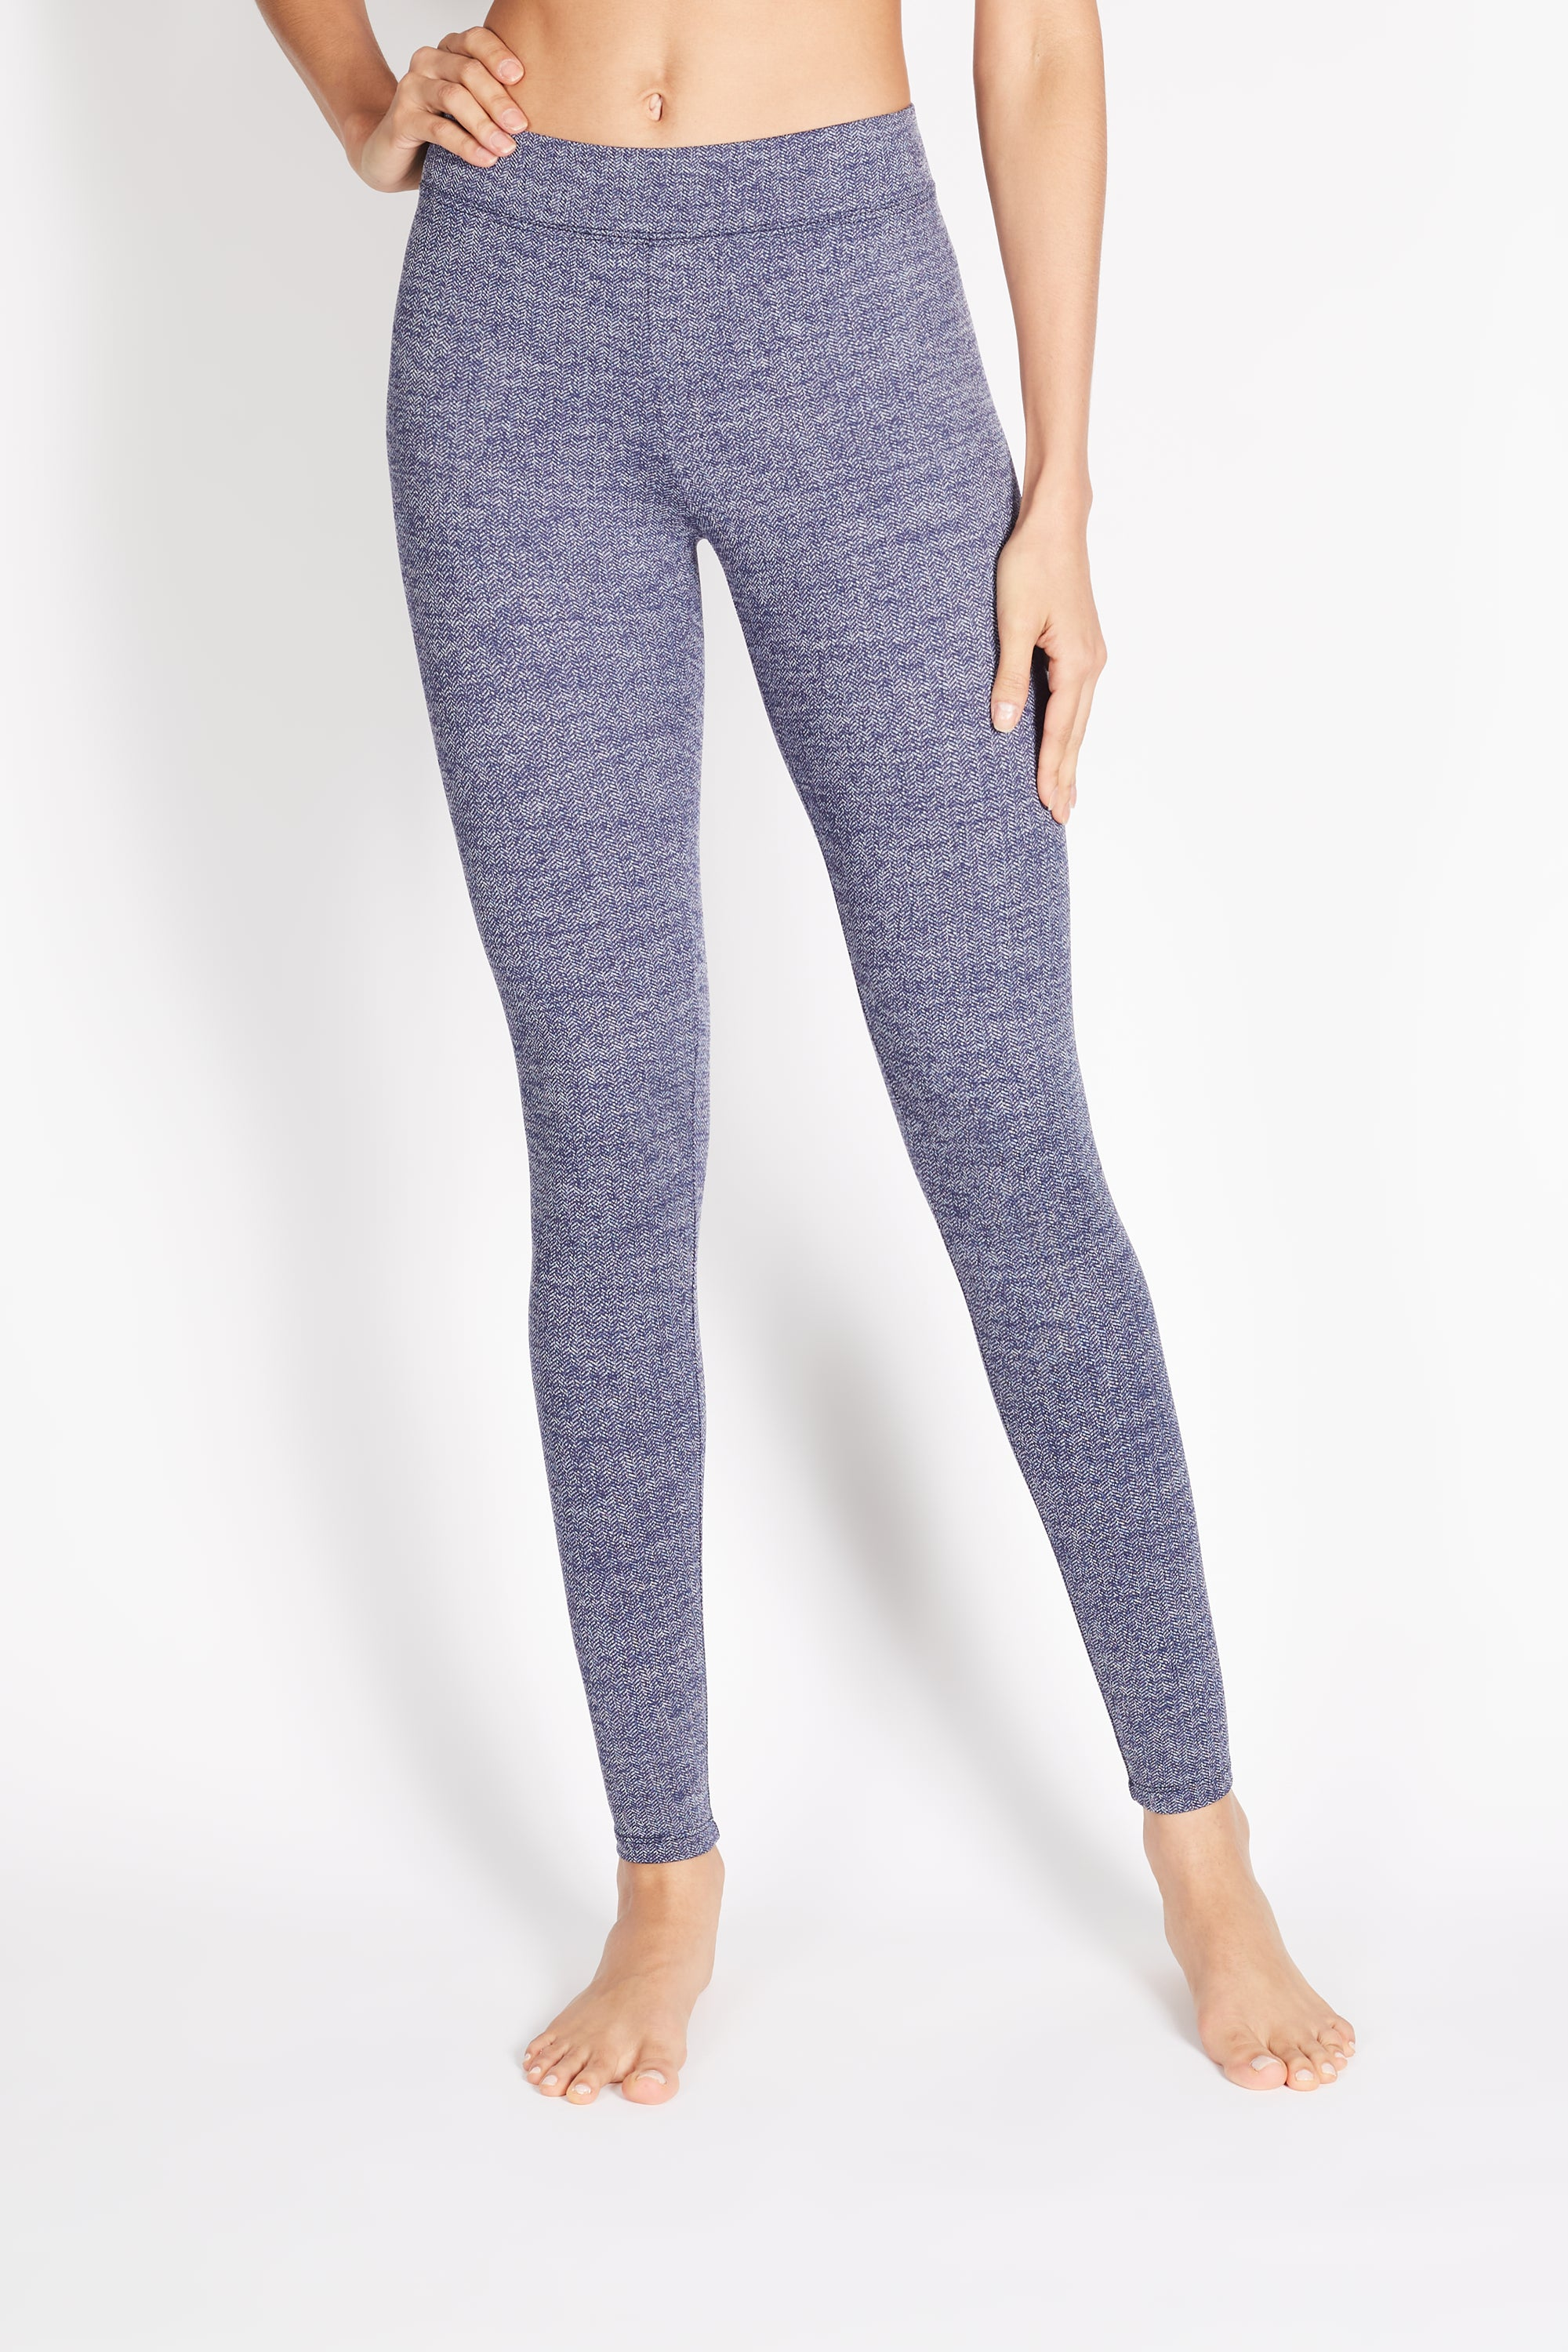 "PITA HIGH RISE BASIC LEGGING ""BLUE HERRINGBONE"""